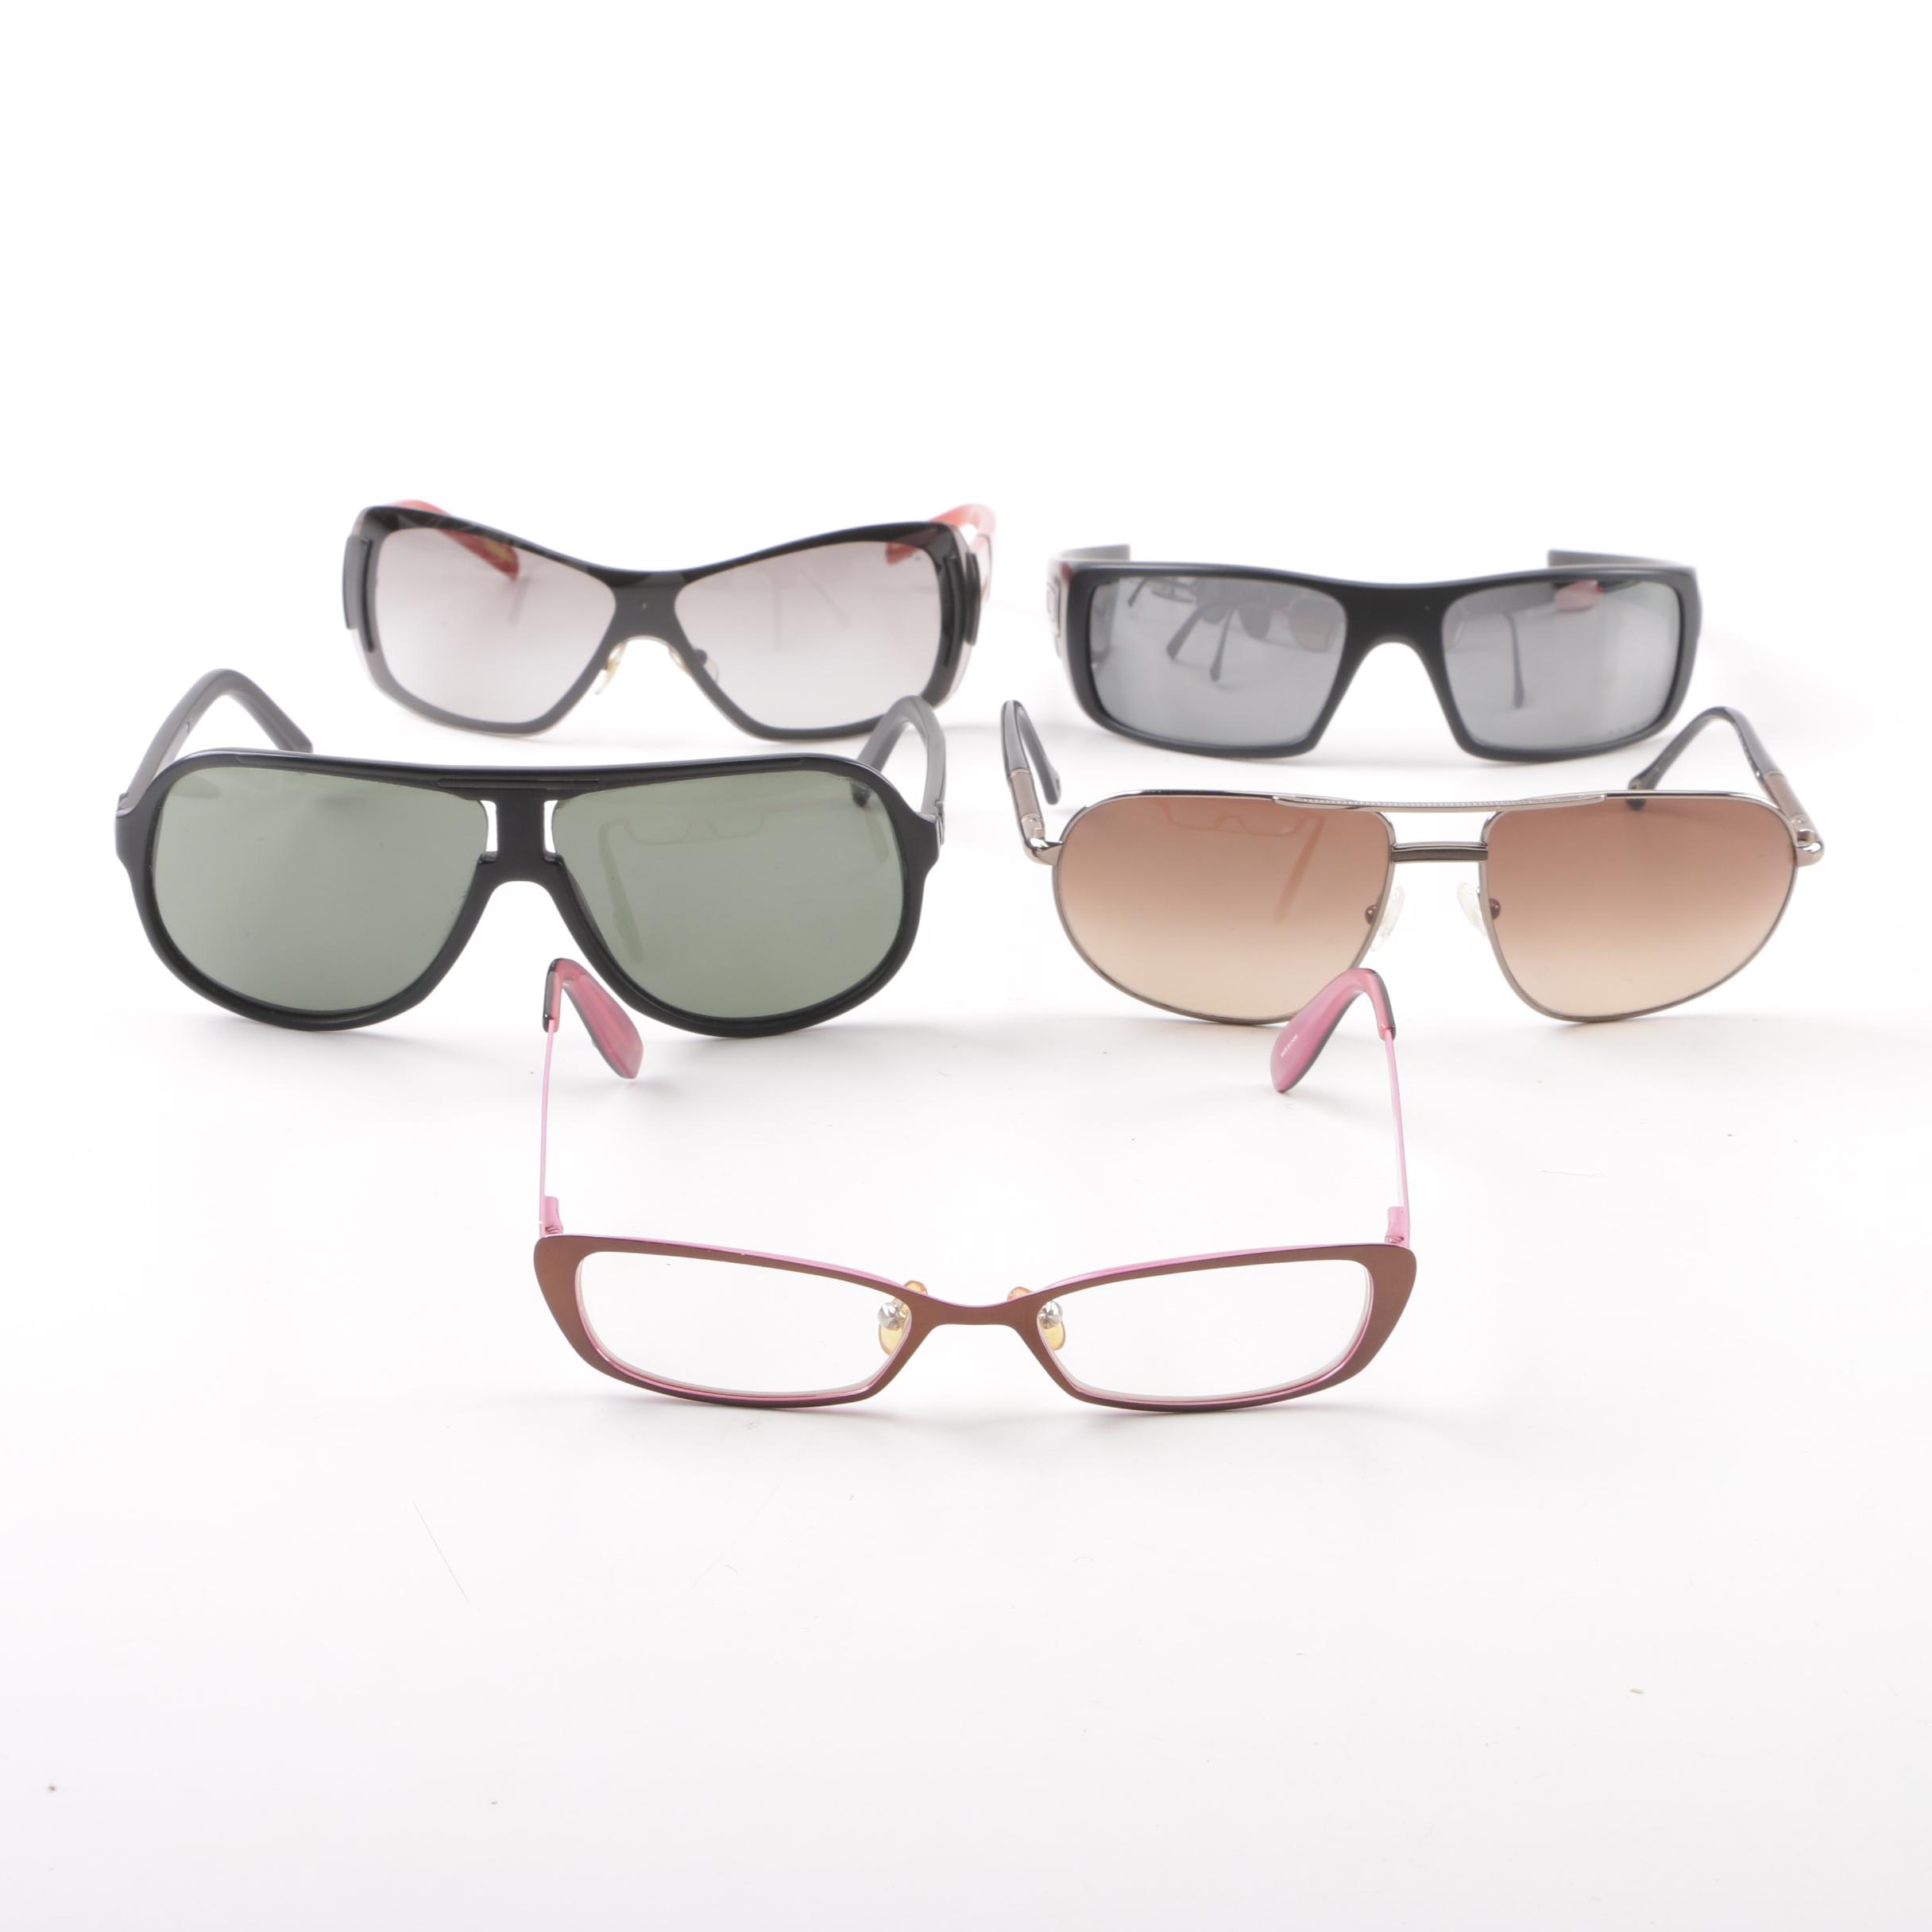 Sunglasses and Eyeglasses including Oakley, VonZipper and Juicy Couture